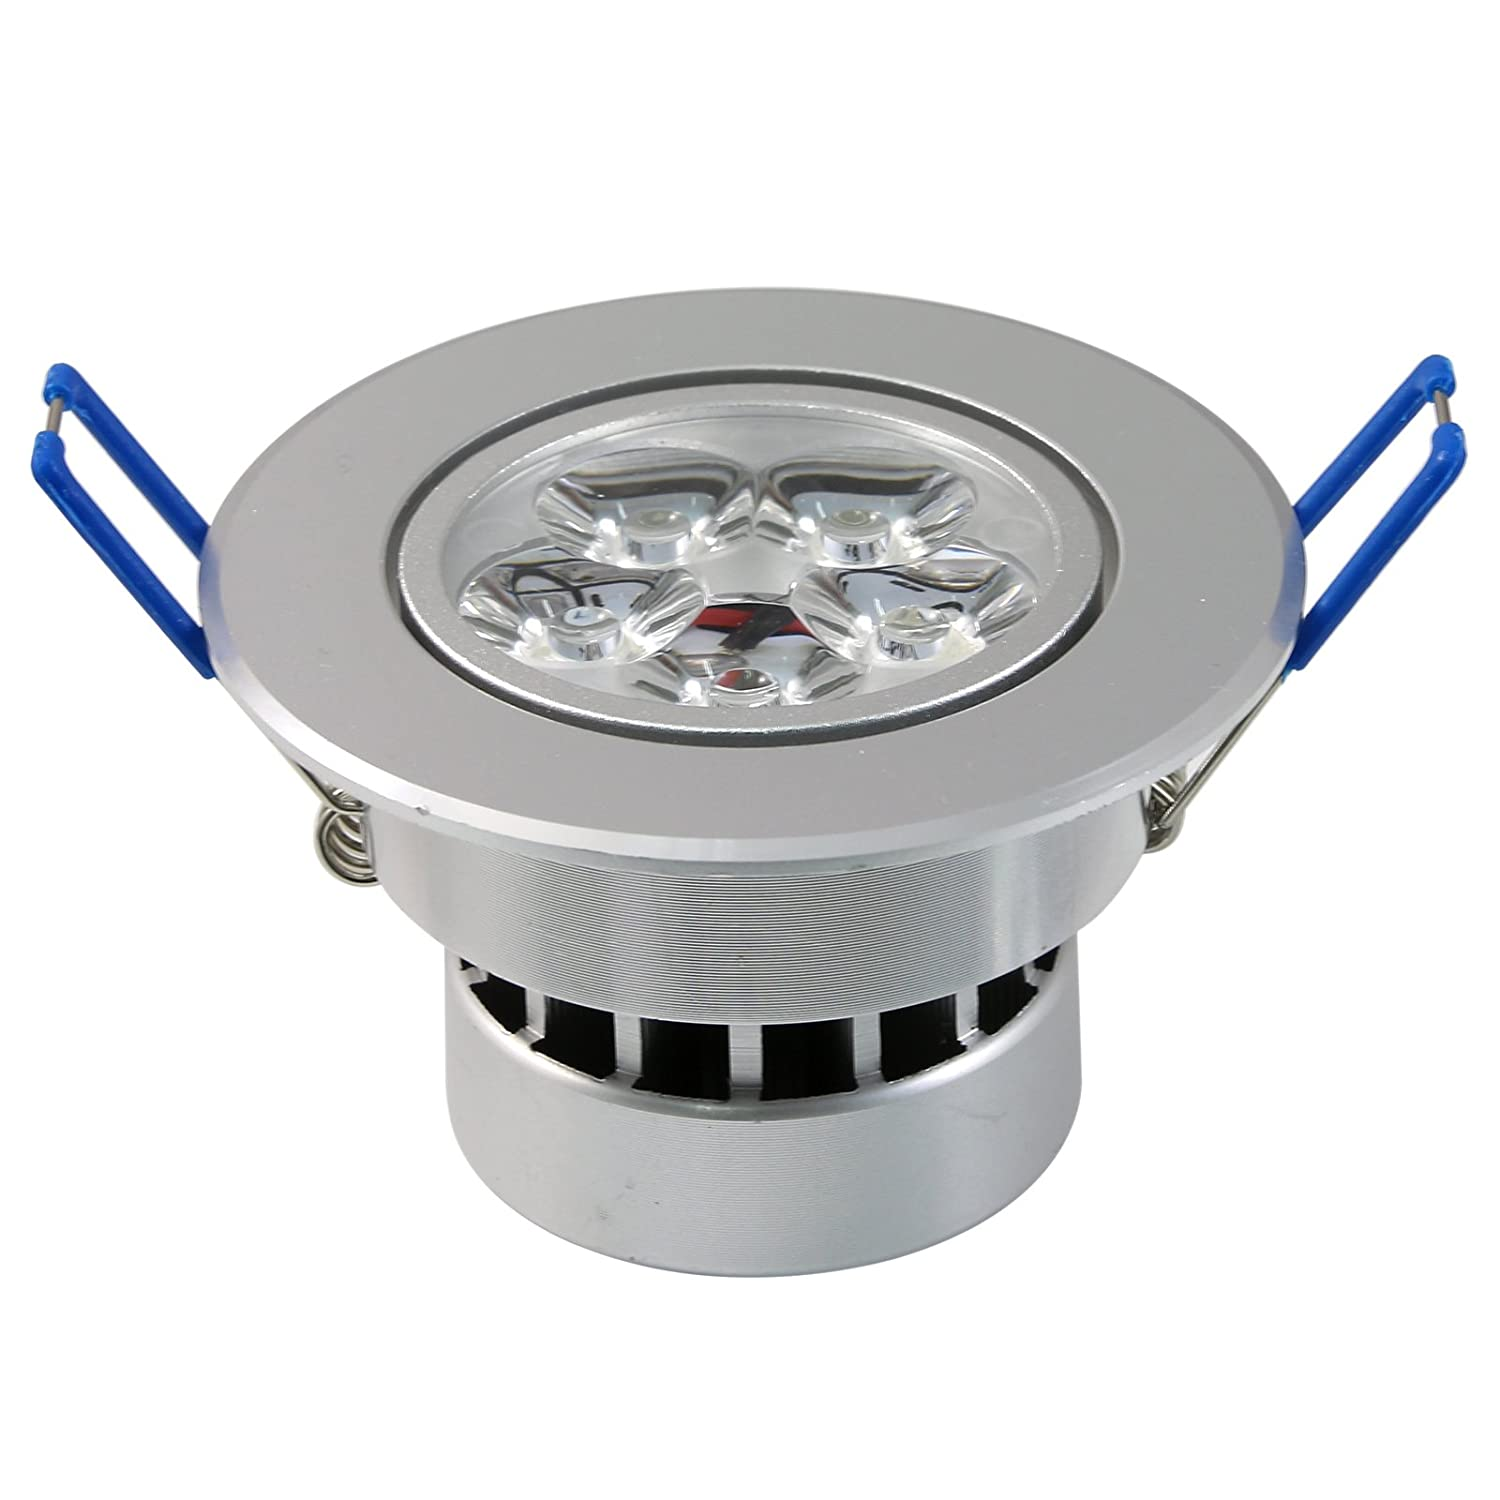 net spot recessed u light warm toctai new led lamp dimmable lights ceilings ceiling cob a downlight dimming white